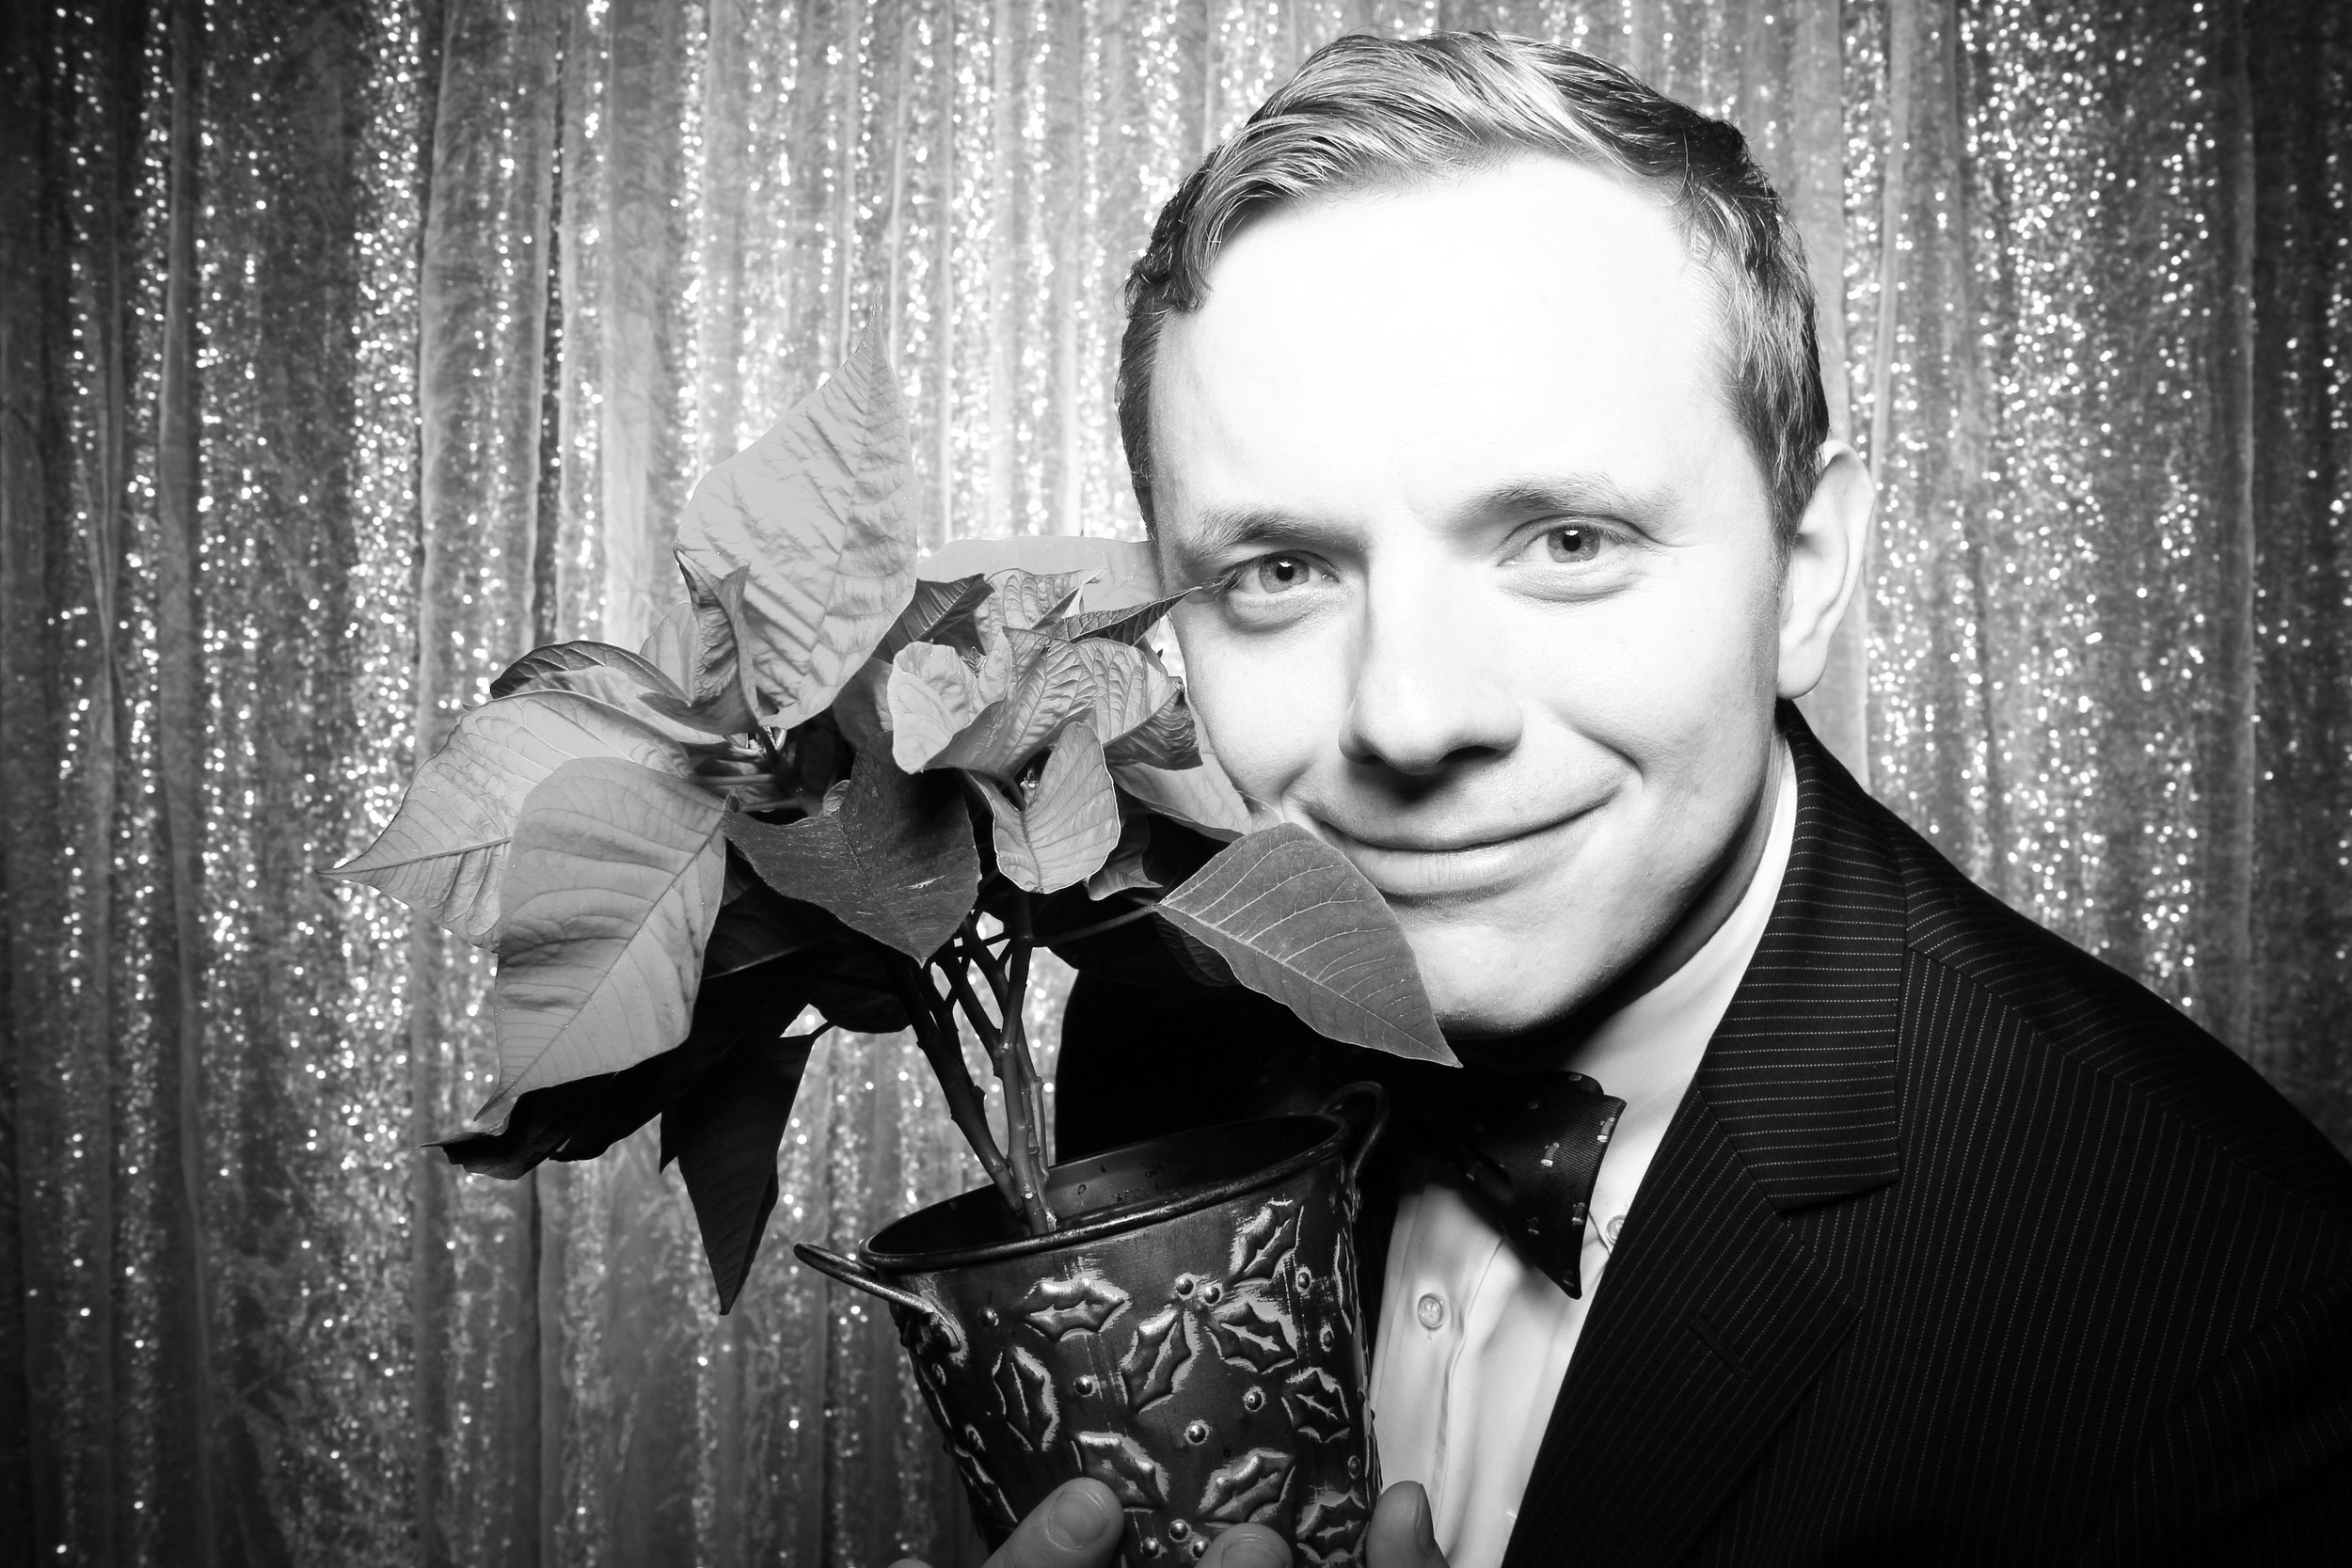 Chicago_Vintage_Photobooth_Montgomery_Club_Holiday_Party_28.jpg